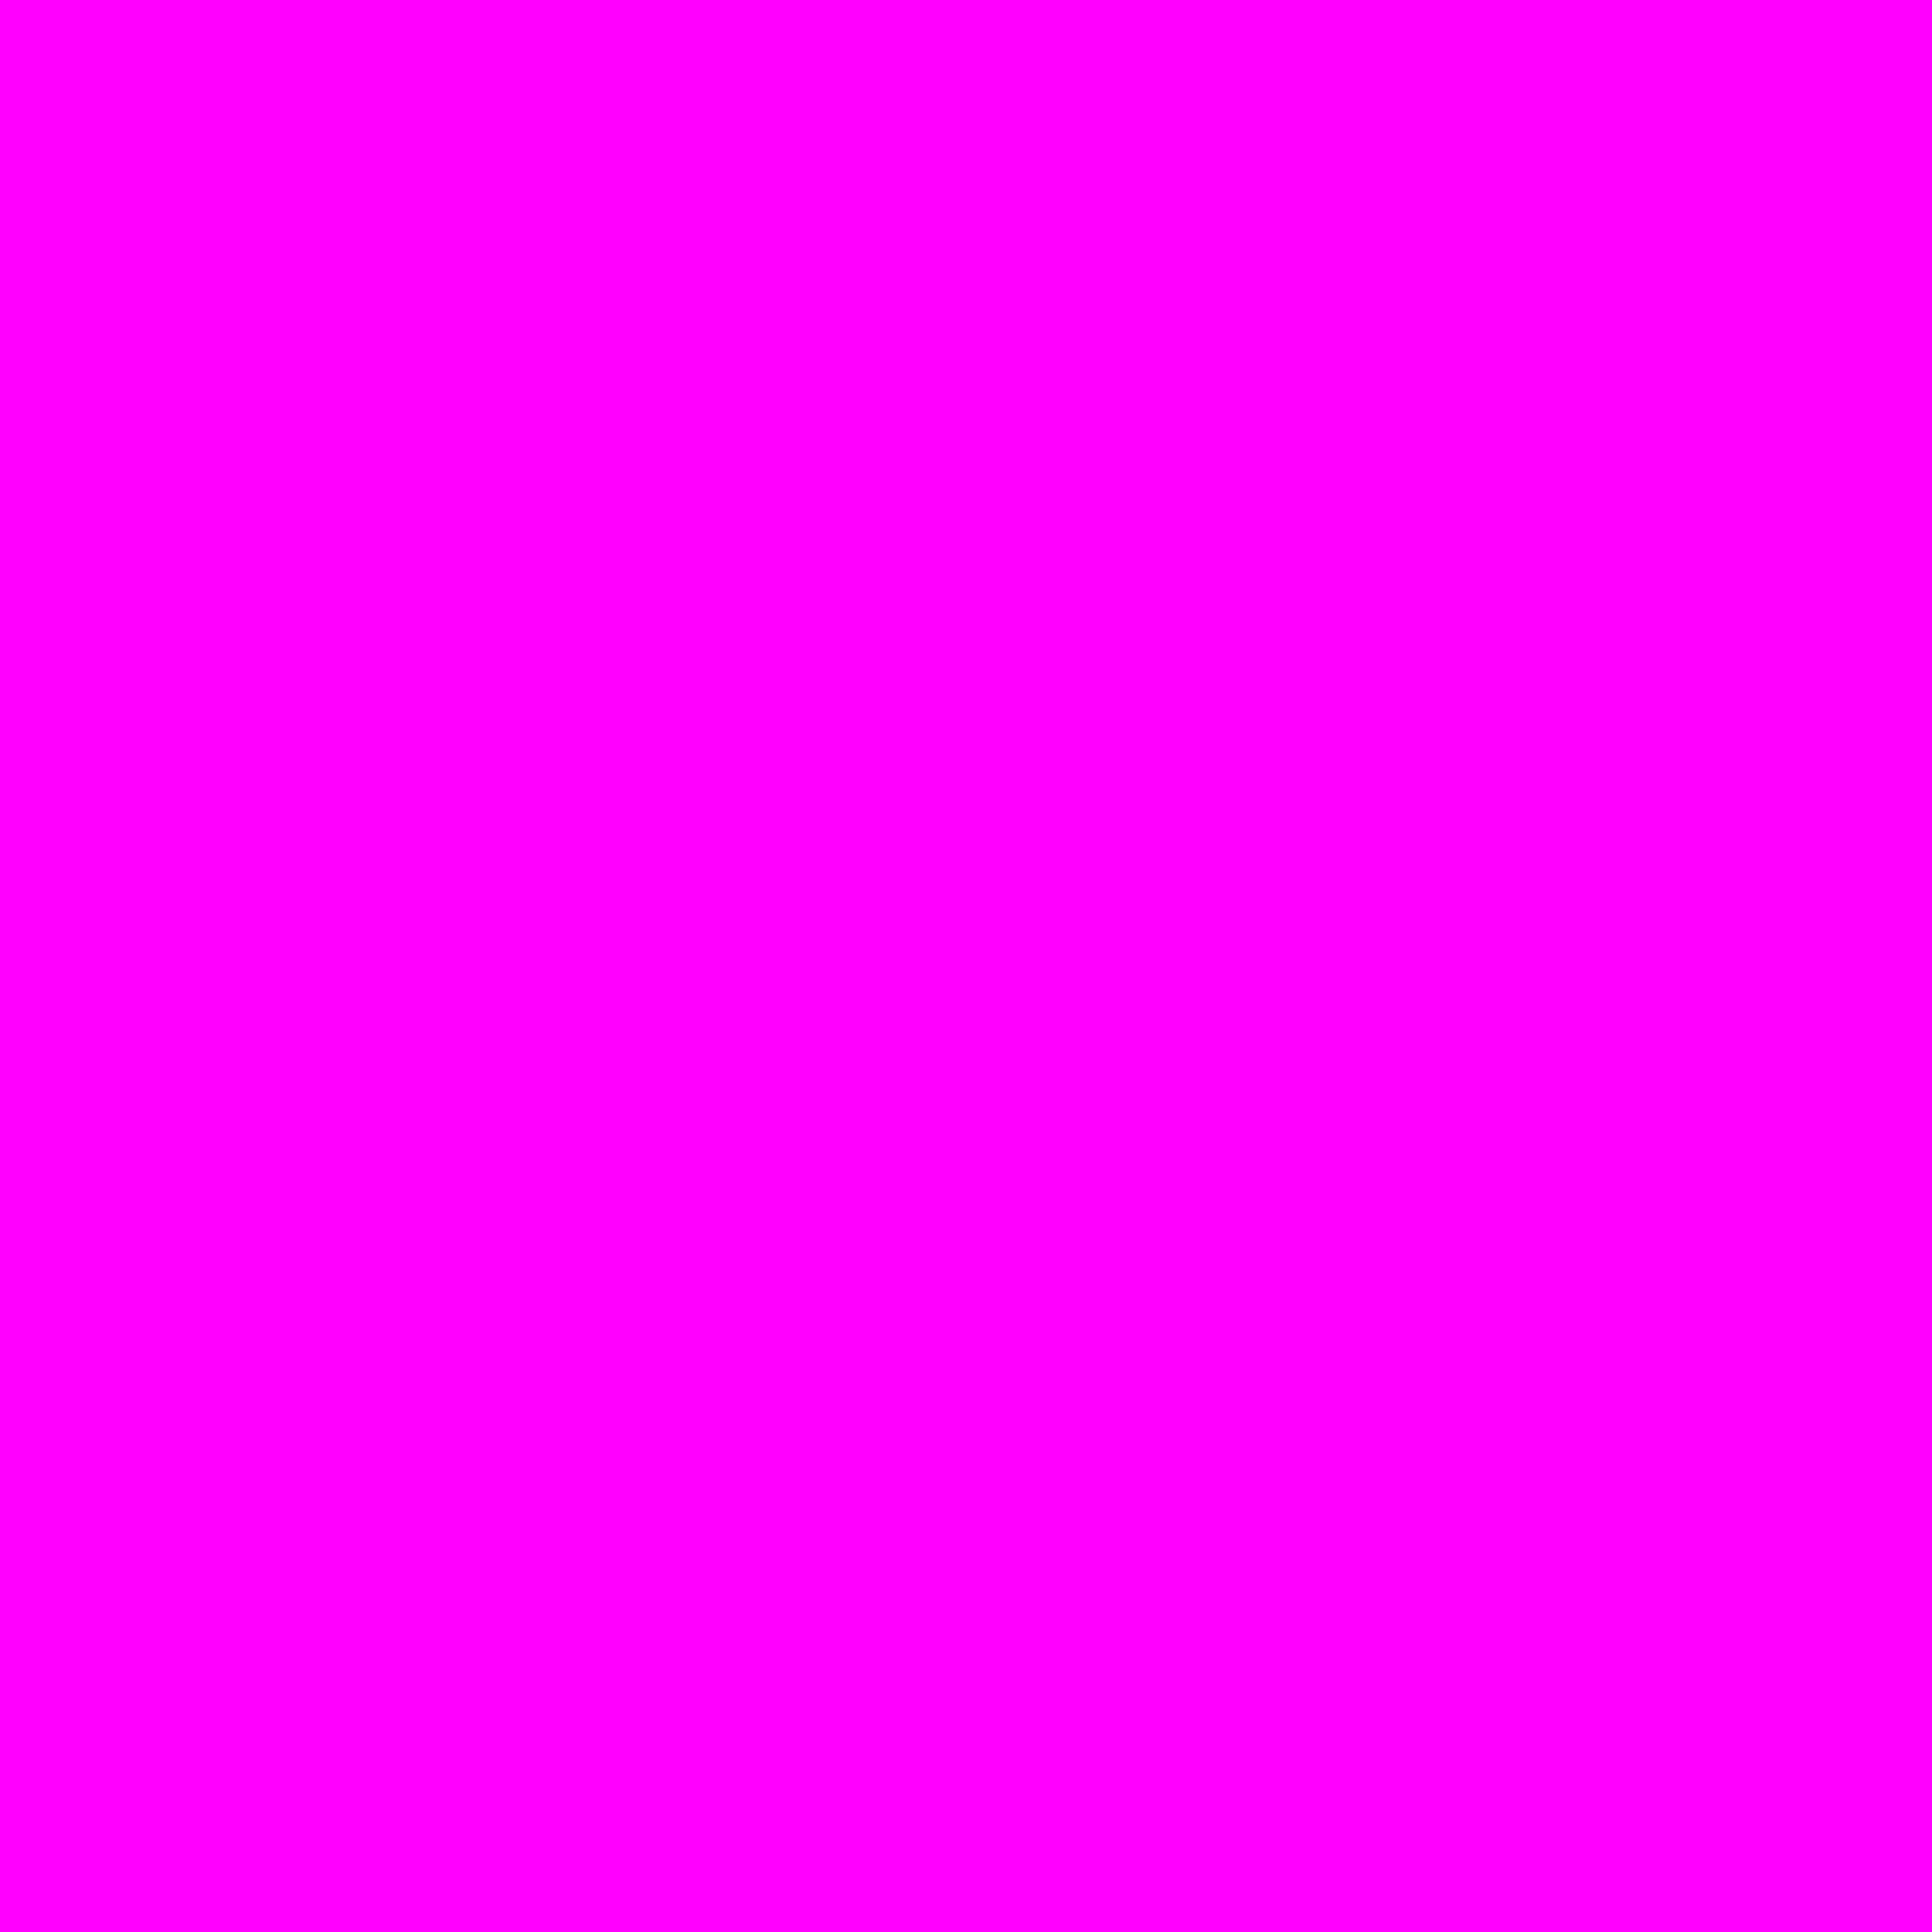 2048x2048 Fuchsia Solid Color Background